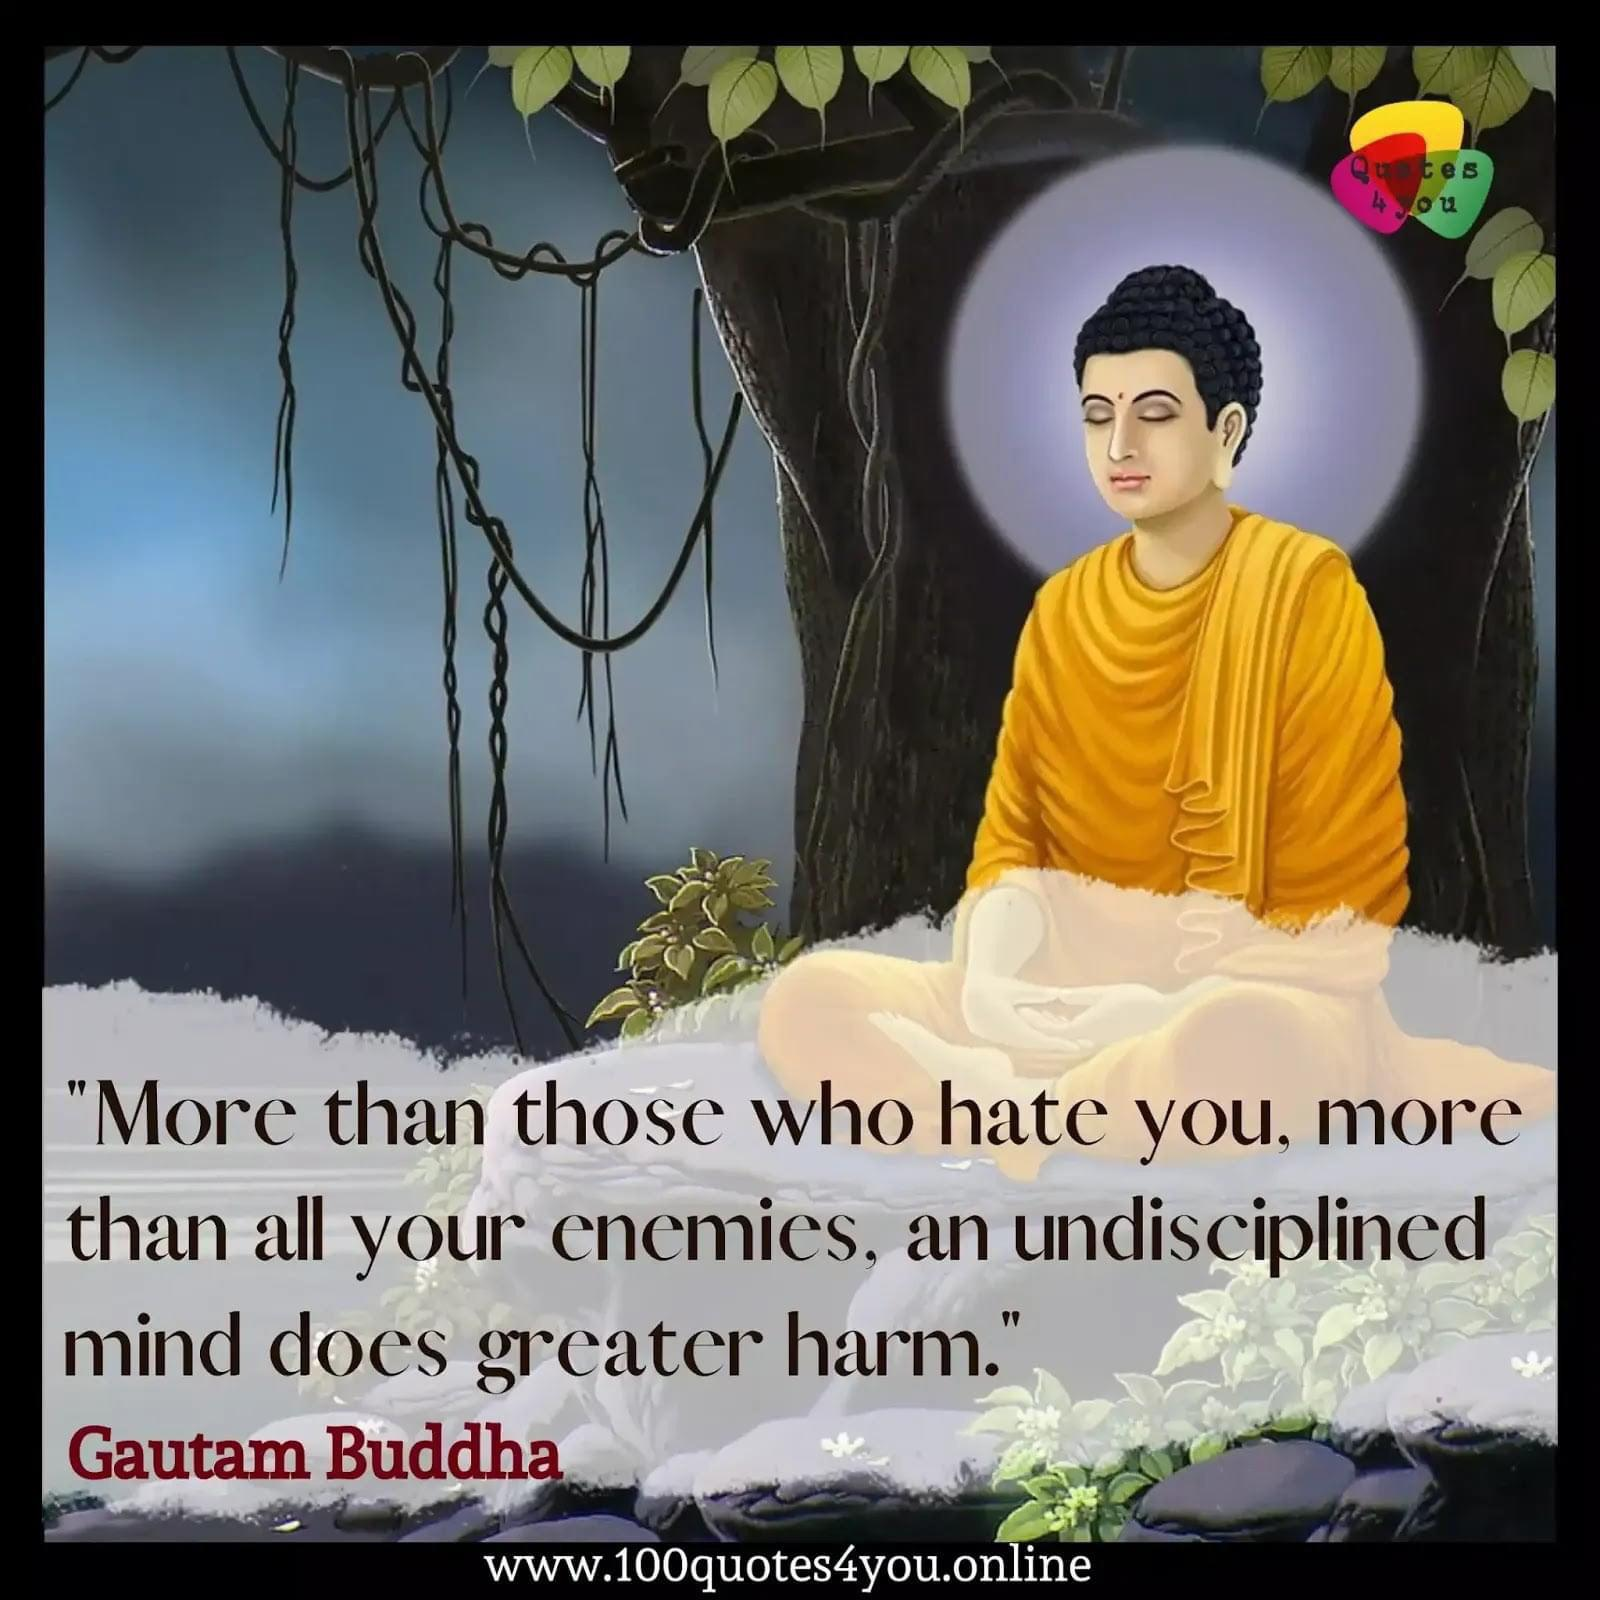 [Image] More than those who hate you, more than all your enemies, an undisciplined mind does greater harm – the Buddha